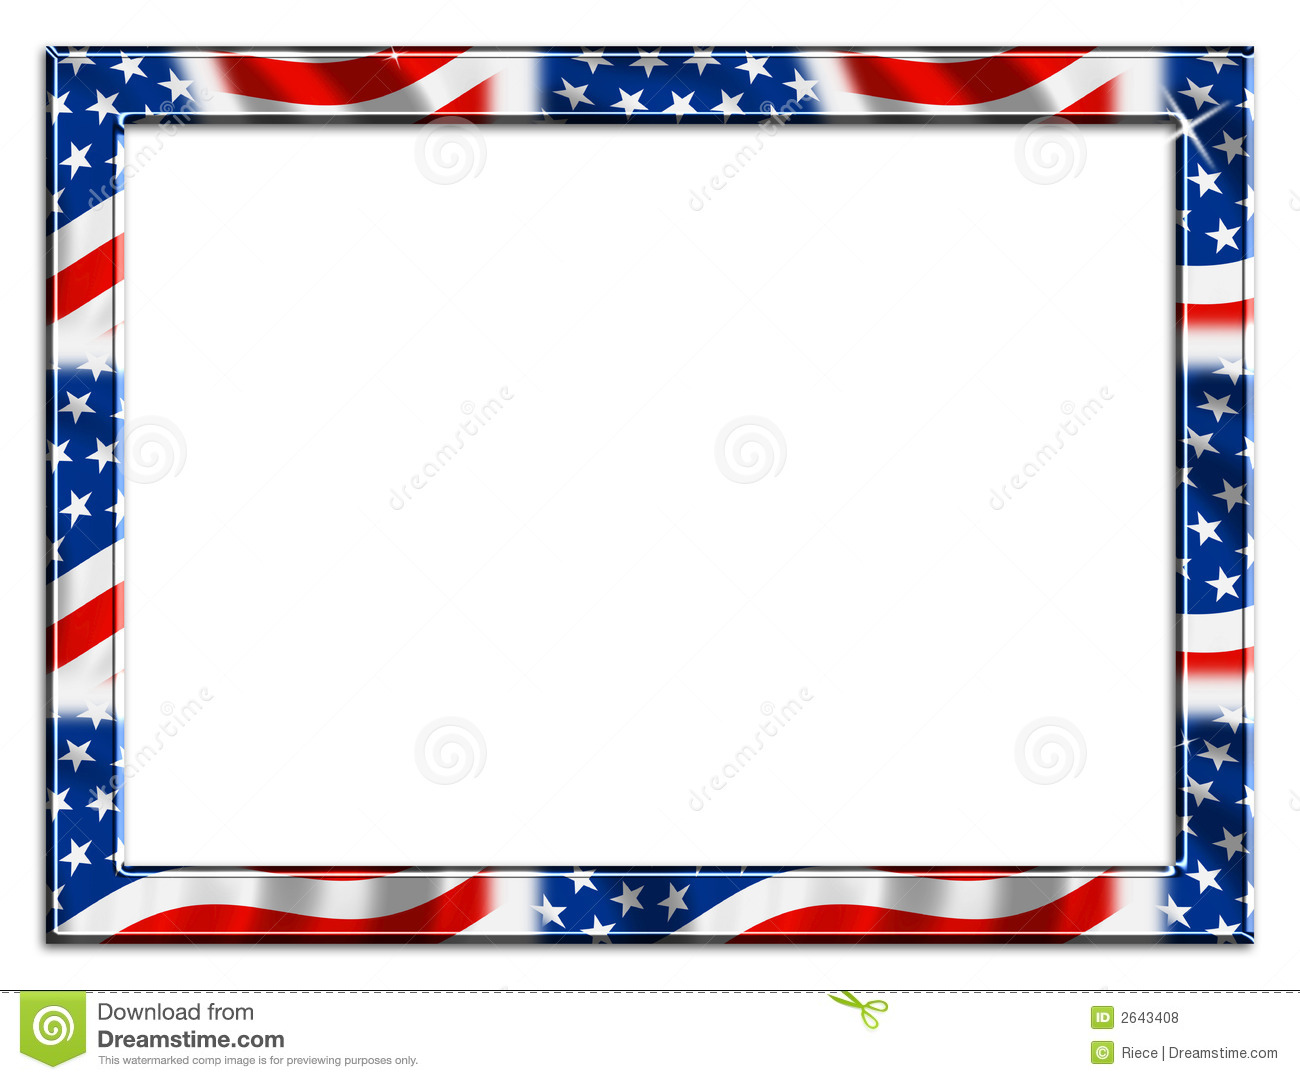 Watermark memorial day clipart banner black and white download Memorial Day Borders Group with 20+ items banner black and white download